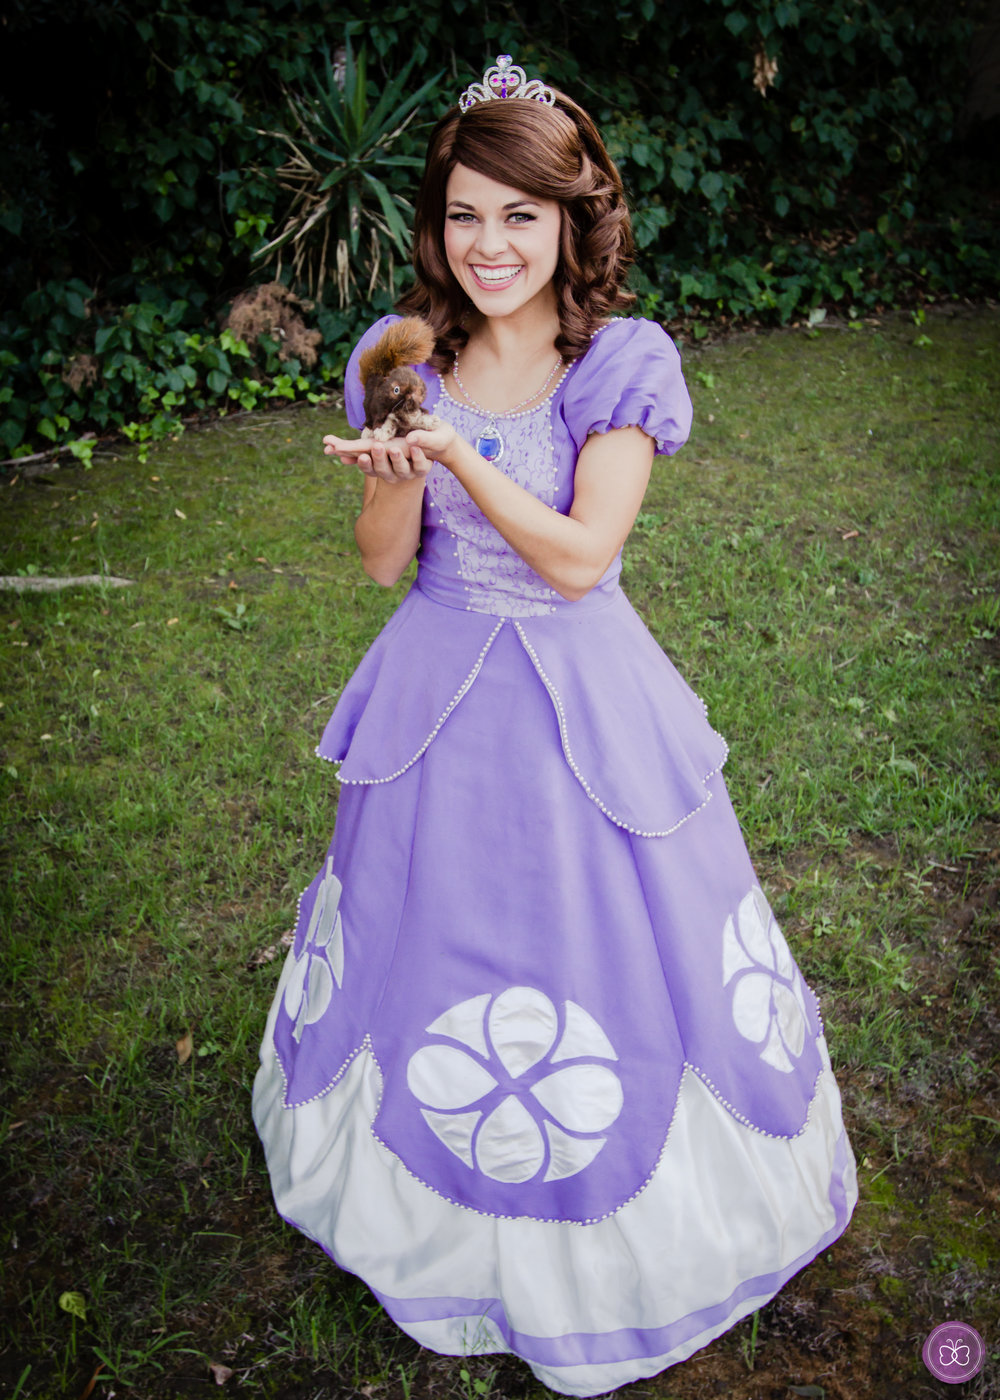 princess sofia the first party character LA los angeles